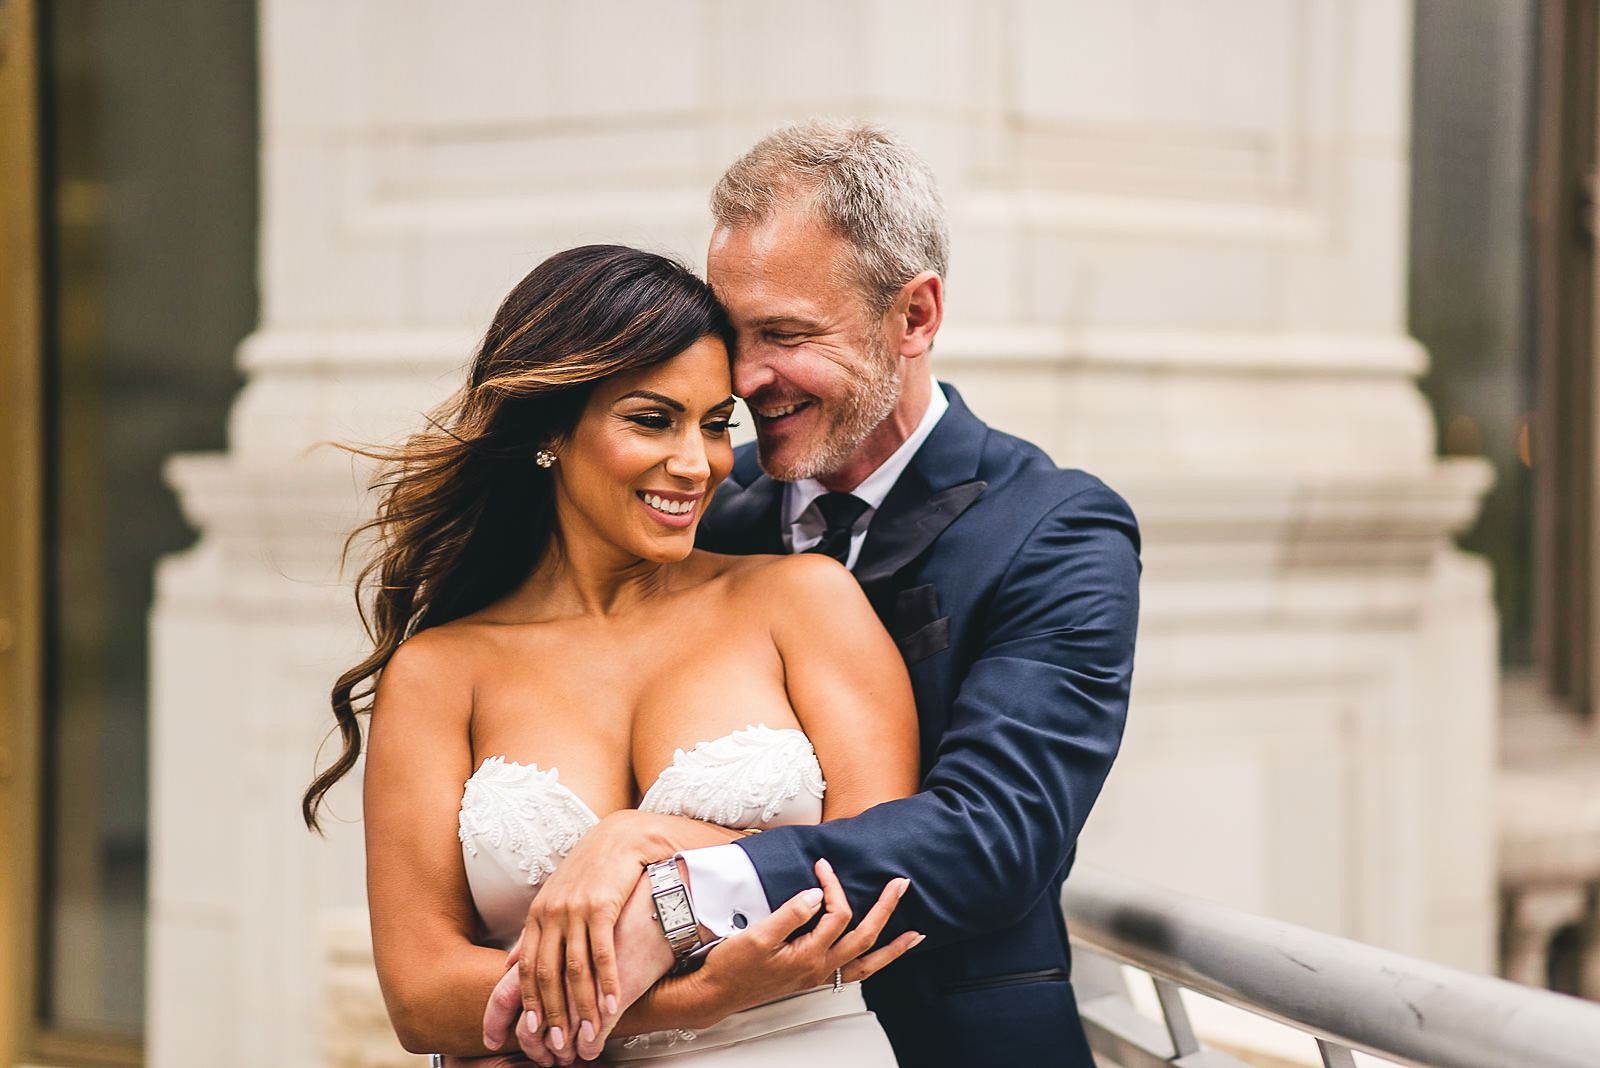 14 chicago wedding photos - Intercontinental Chicago Hotel Wedding // Lili + Danny